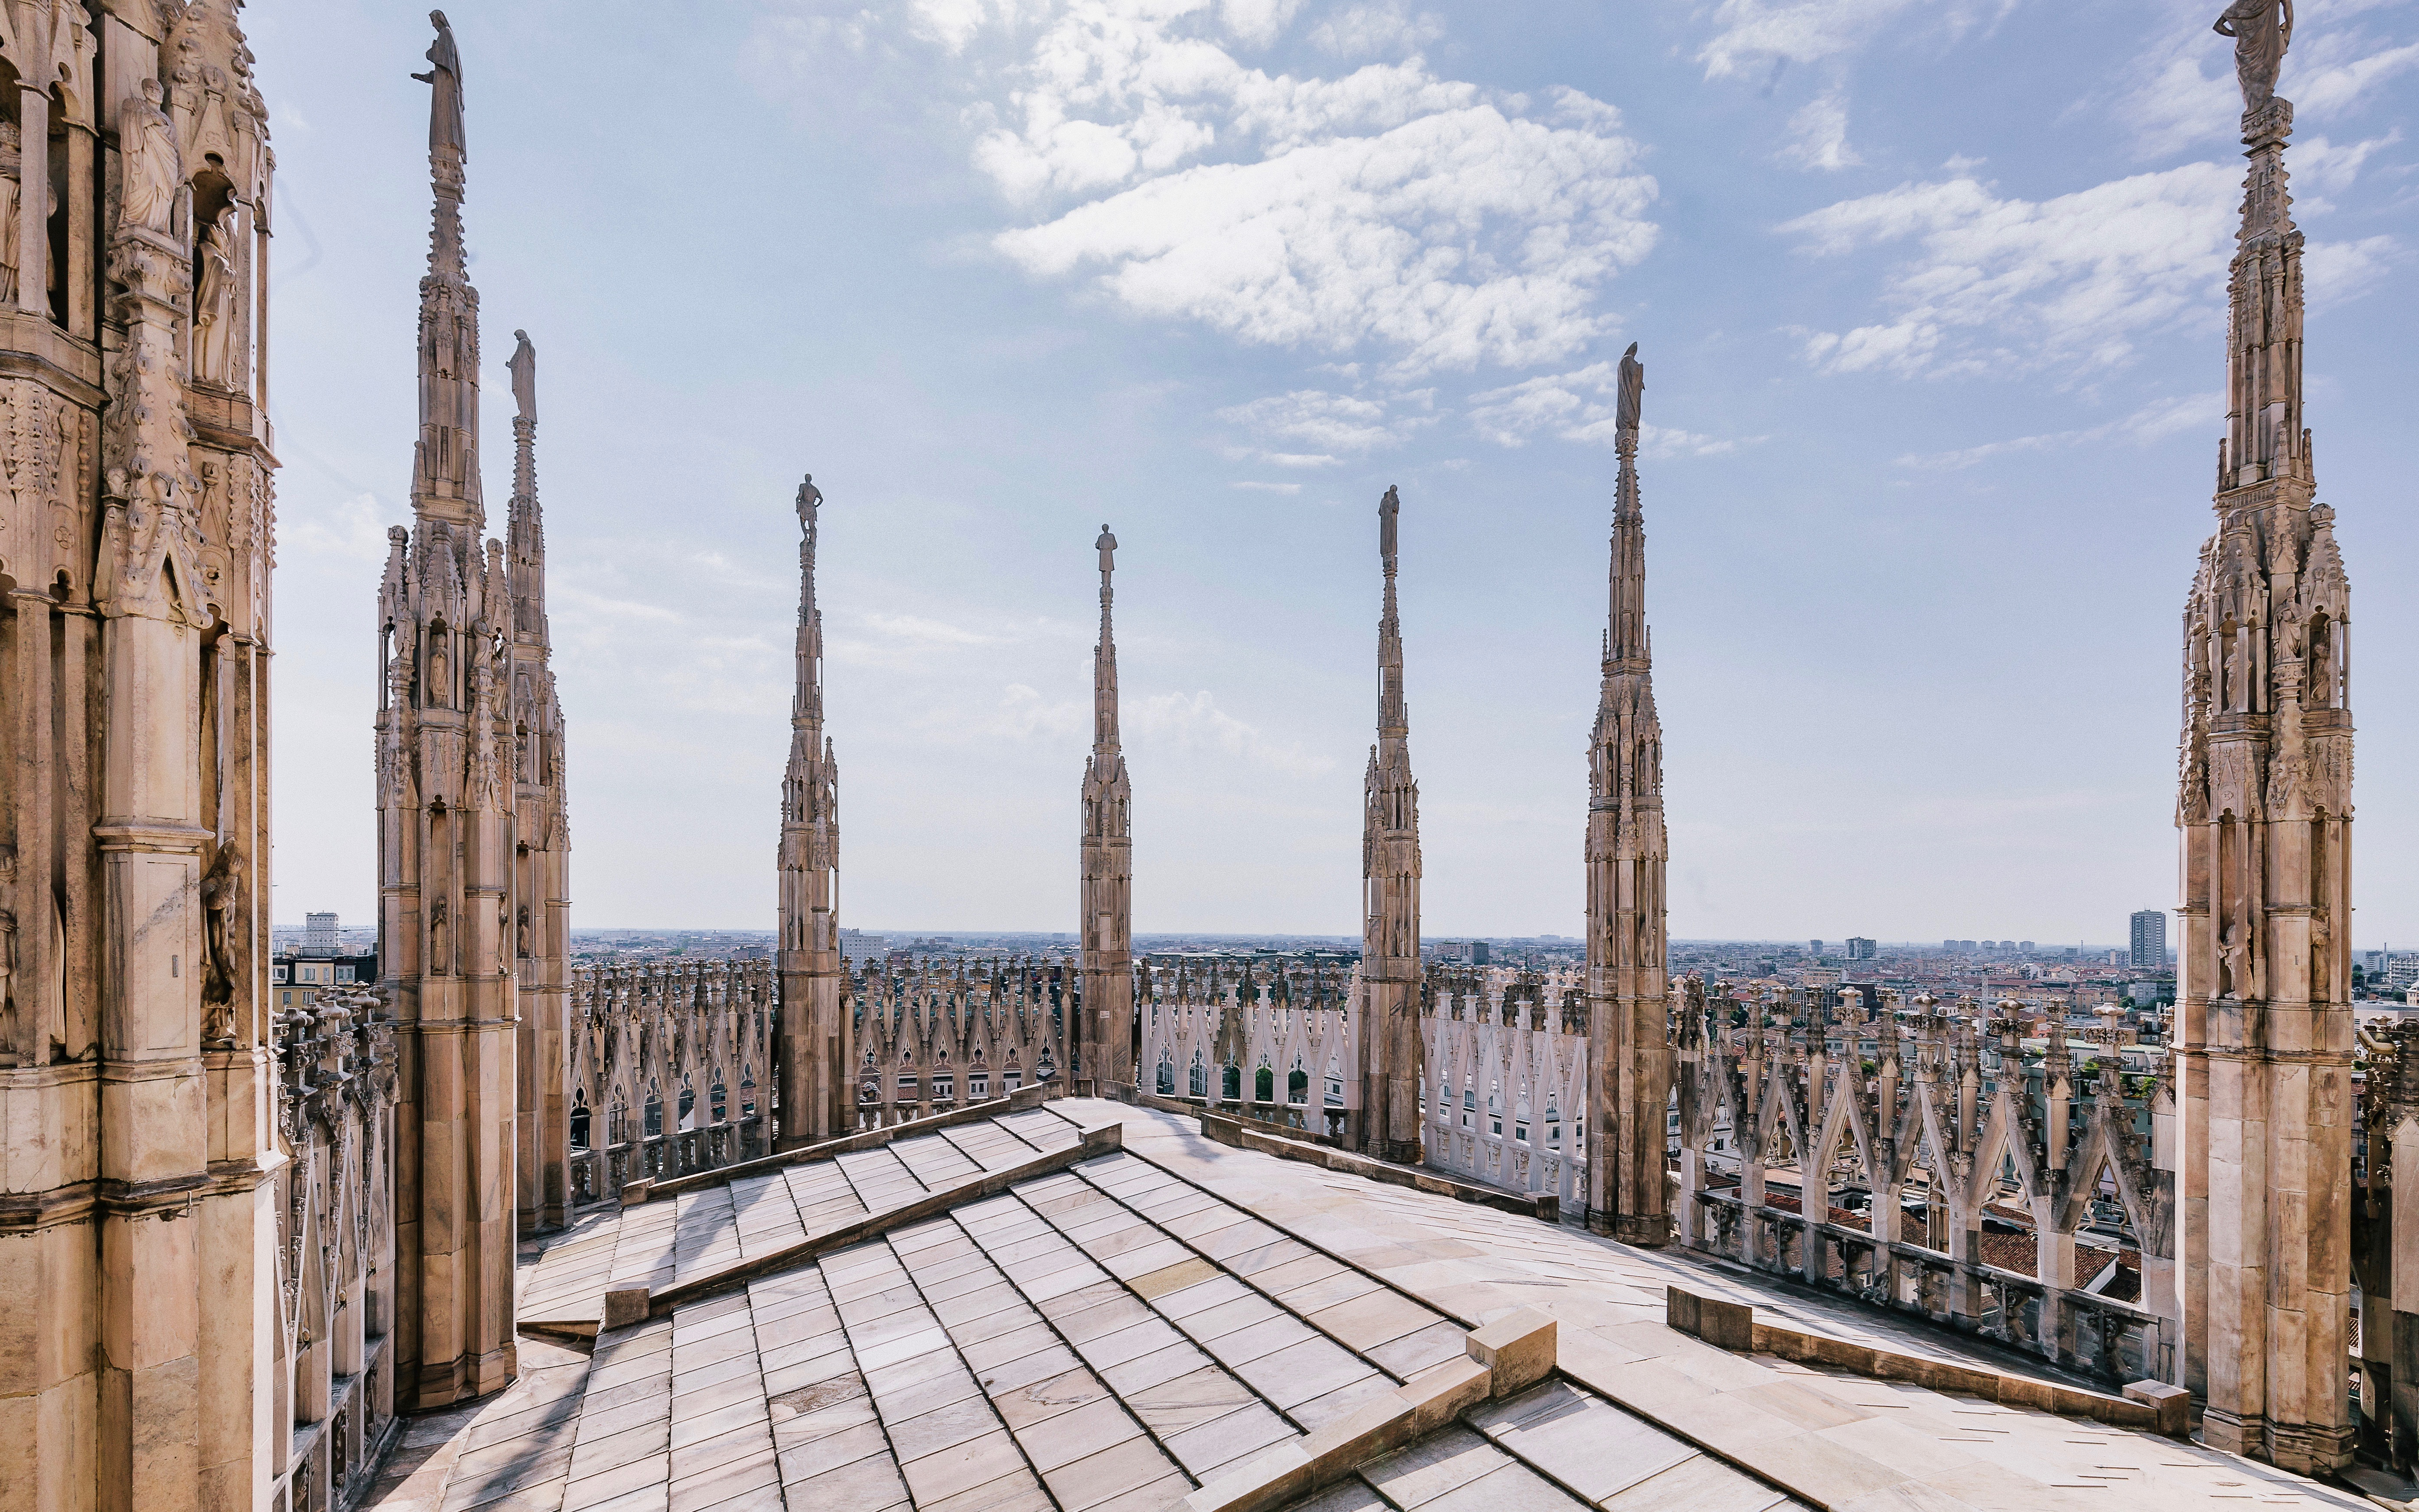 172c6d87 faf9 4891 a09a b37a96113e73 8903 milan duomo cathedral rooltop and its terraces elevator access 02